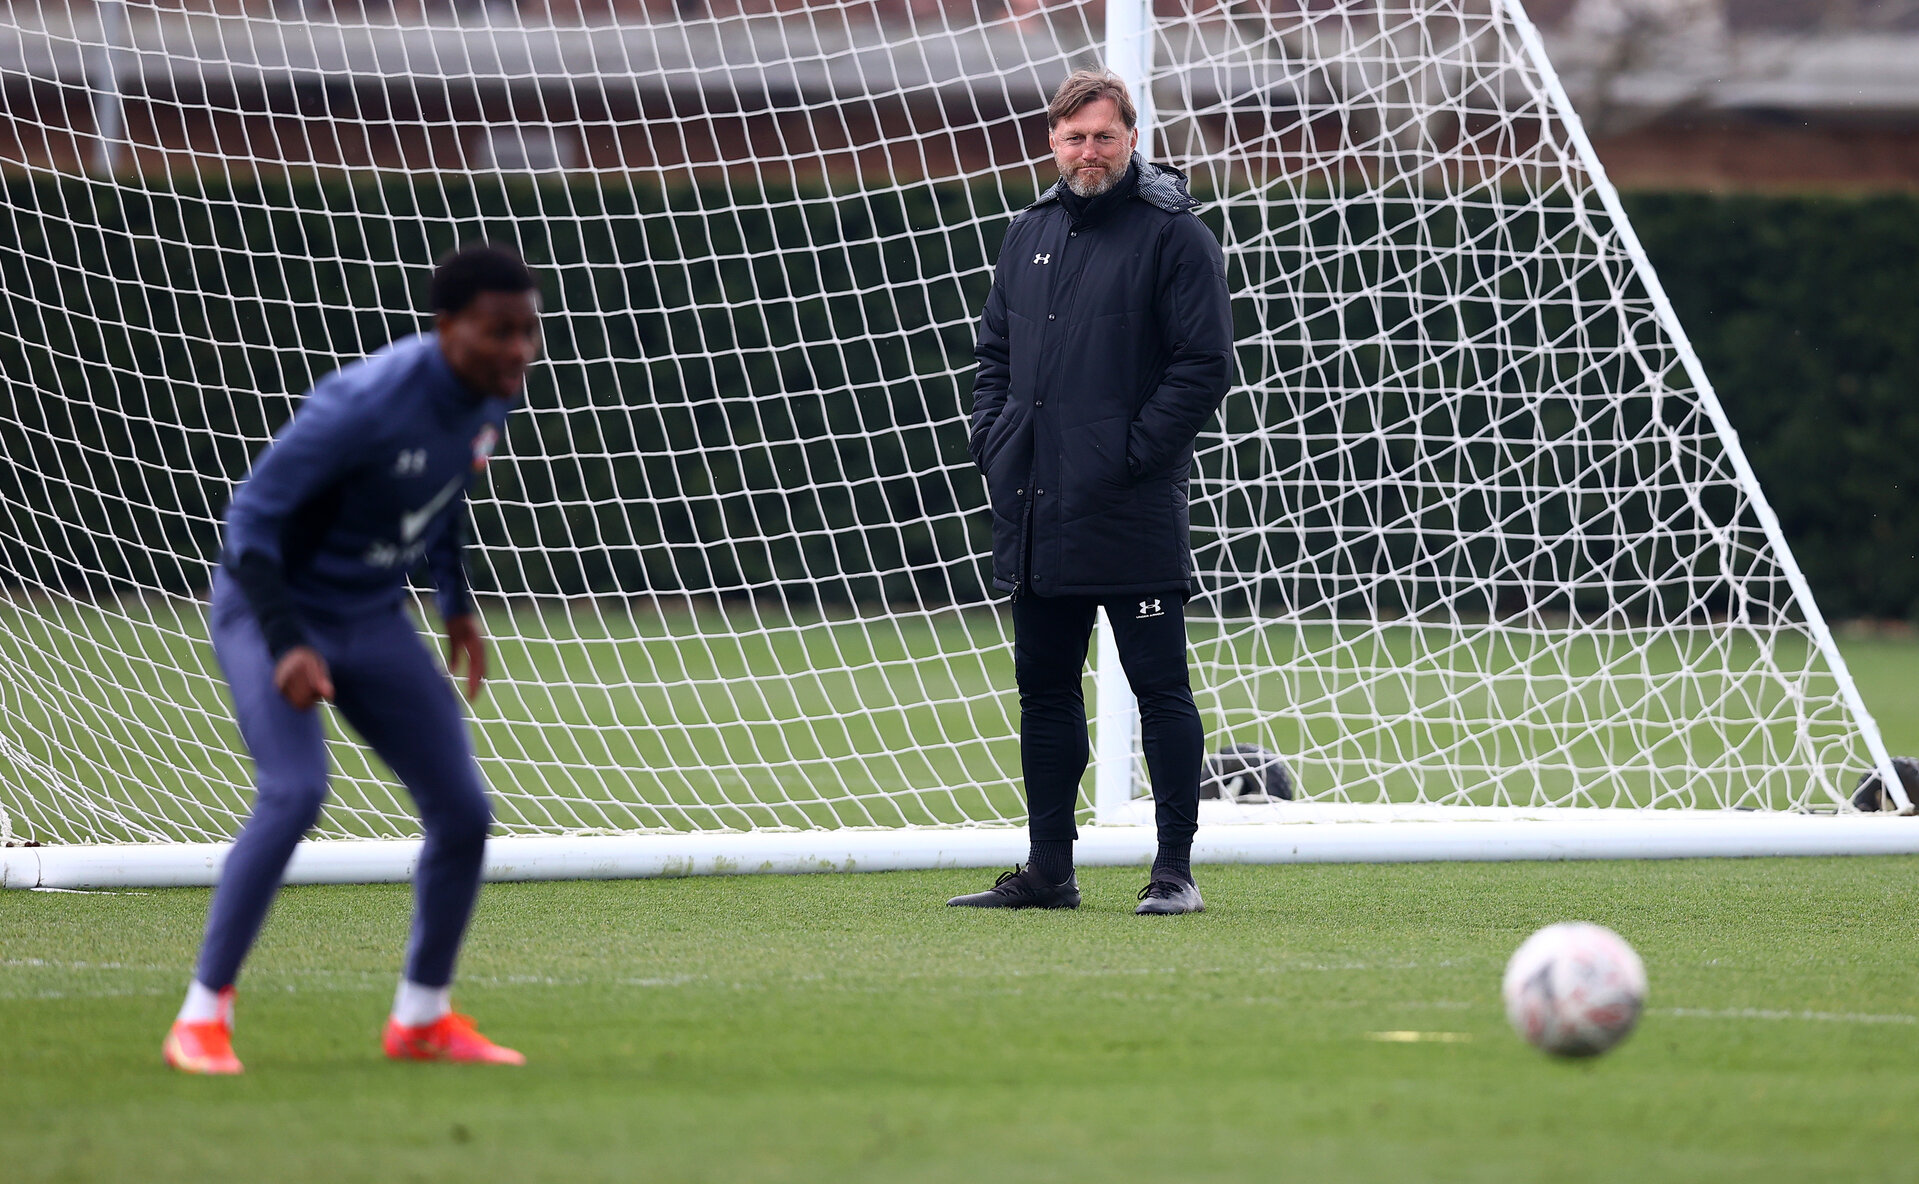 SOUTHAMPTON, ENGLAND - APRIL 14: Southampton manager Ralph Hasenhüttl during a Southampton FC training session at the Staplewood Campus, on April 14, 2021 in Southampton, England. (Photo by Matt Watson/Southampton FC via Getty Images)